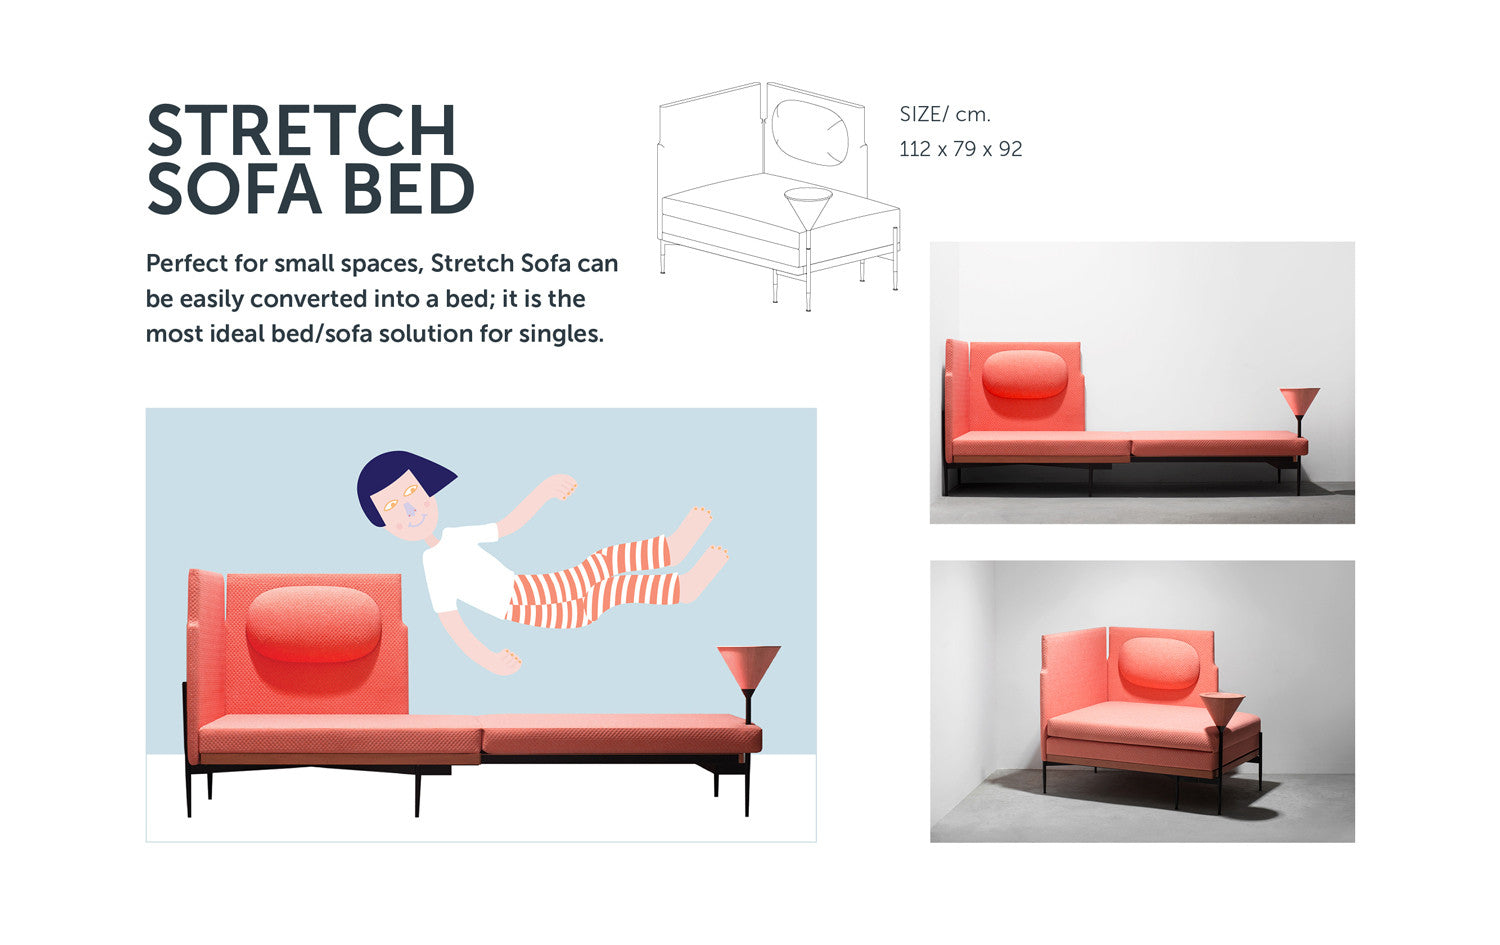 Stretch Sofa Bed from Stretch Your Mind furniture collection by ziinlife